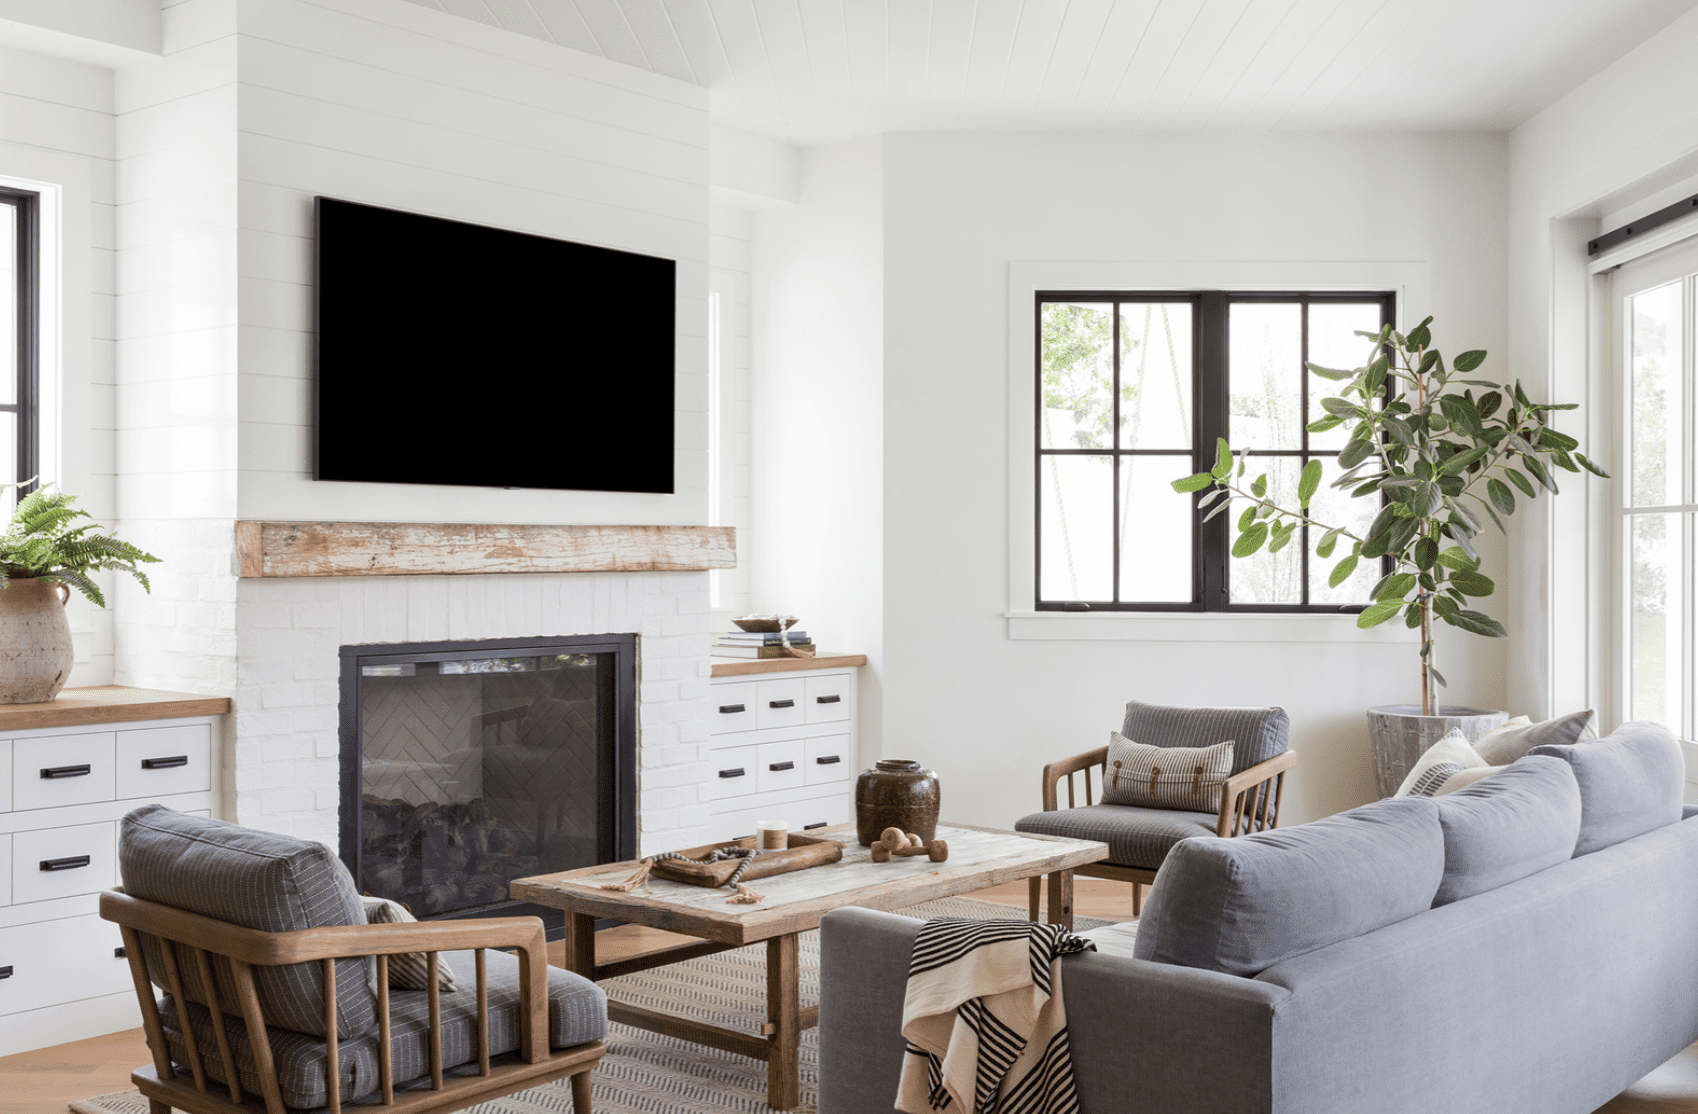 Living room with a plant